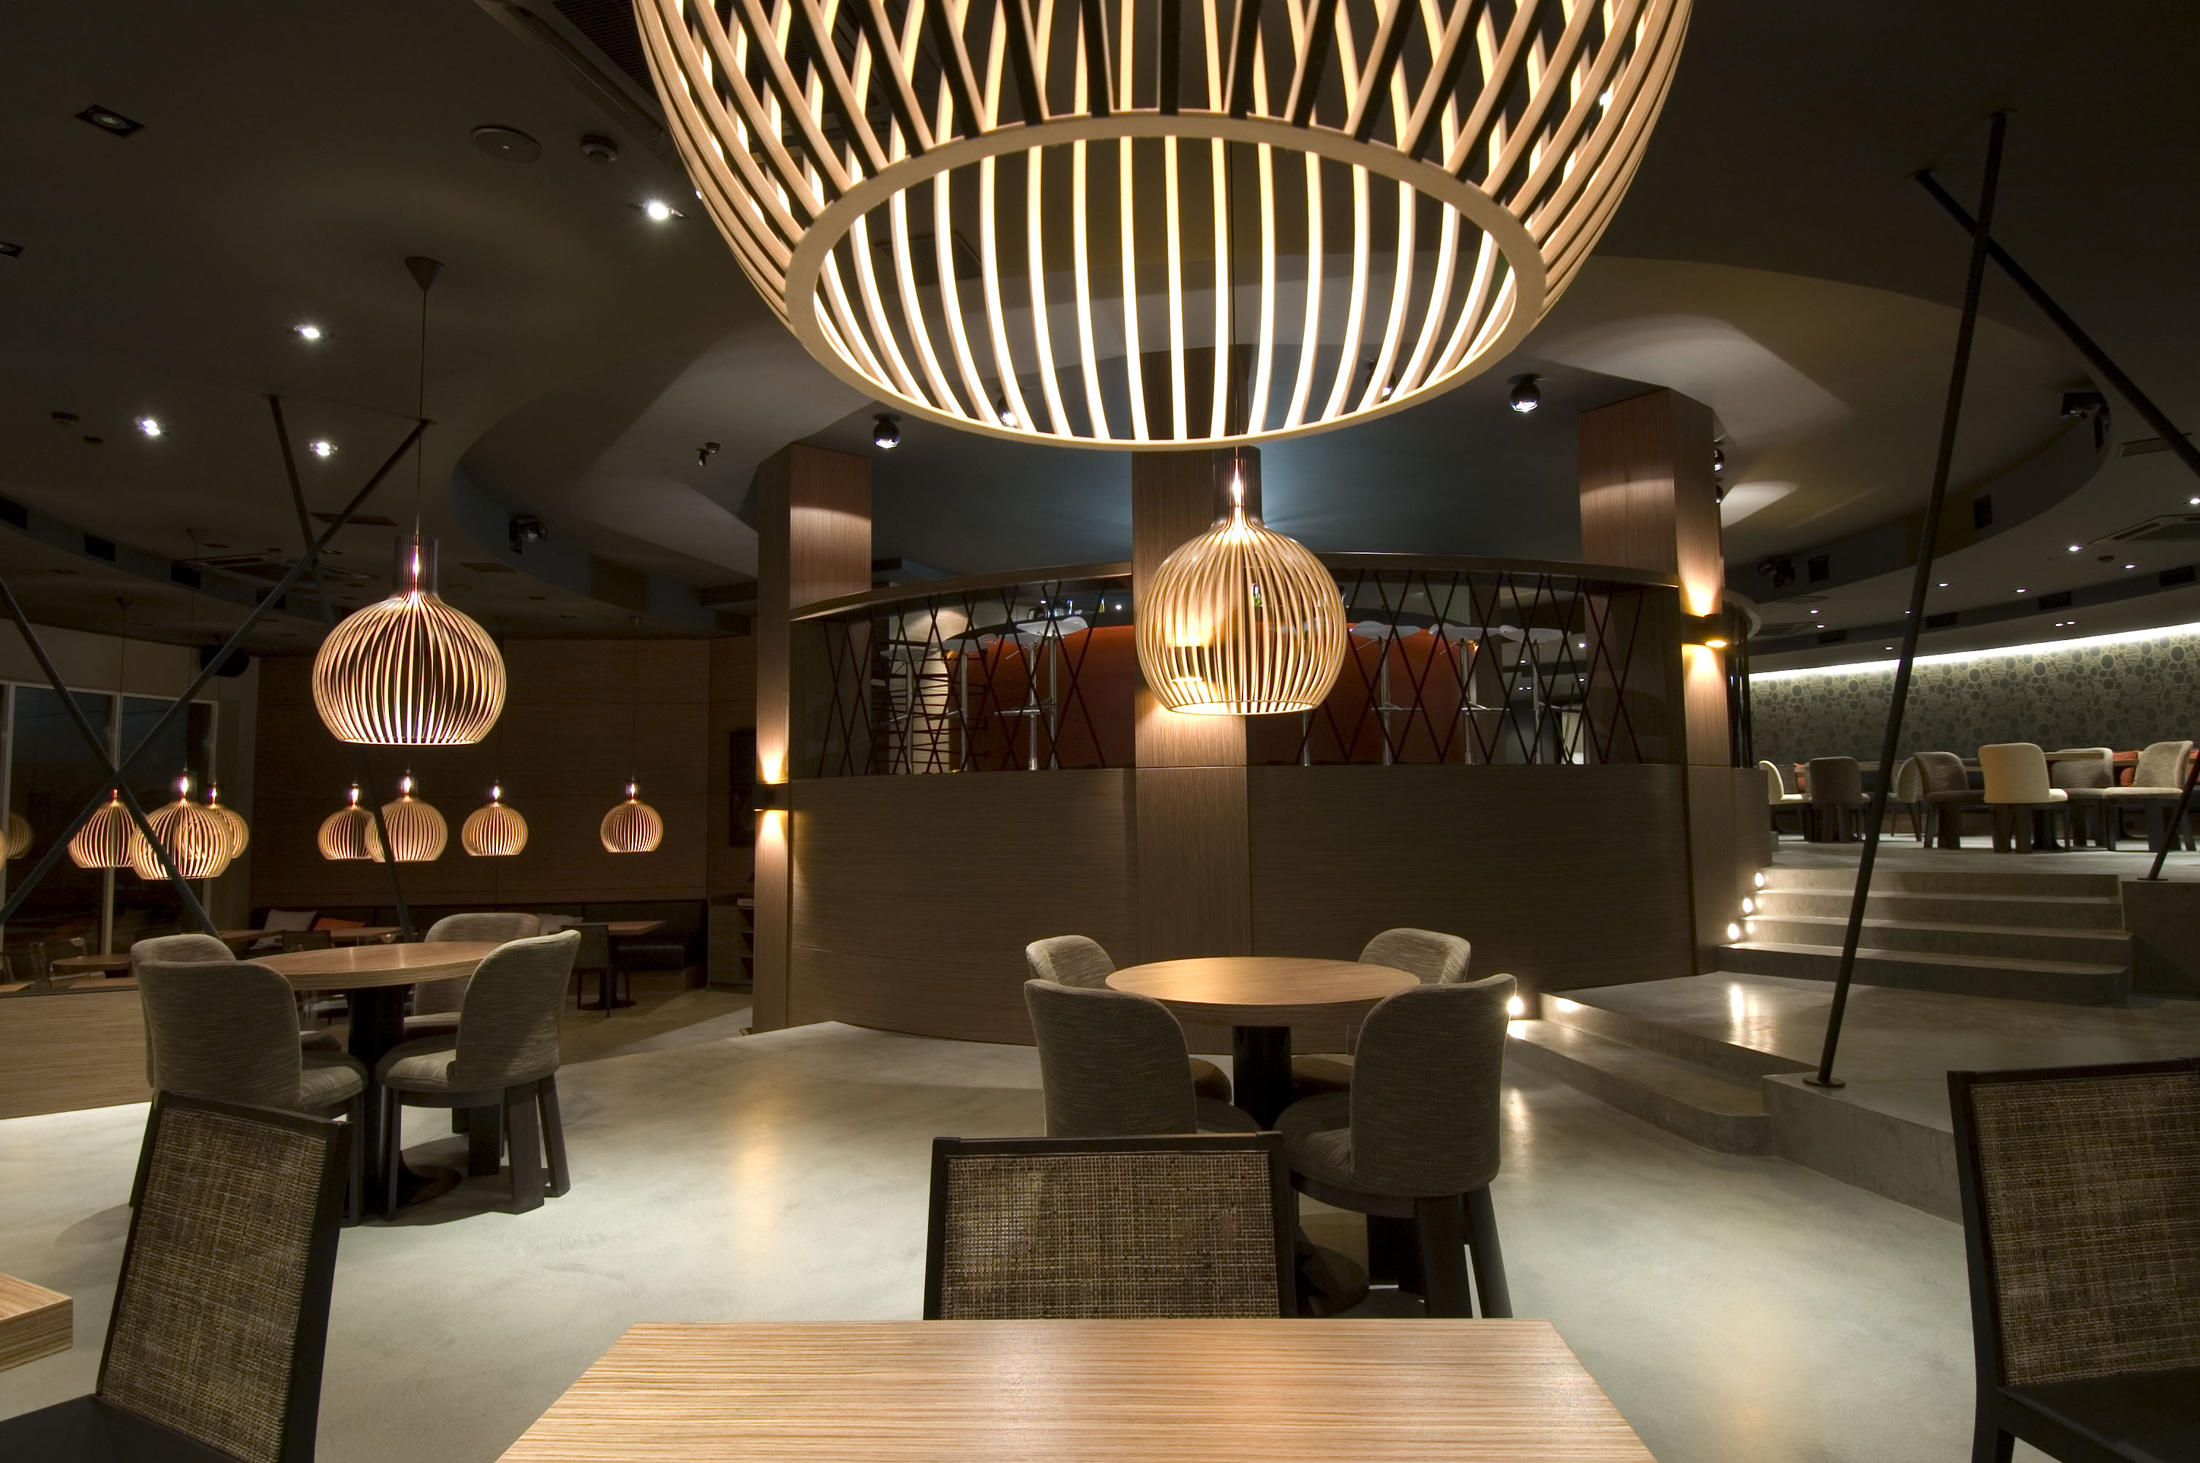 OCTO 4240 PENDANT LAMP General Lighting From Secto Design Architonic